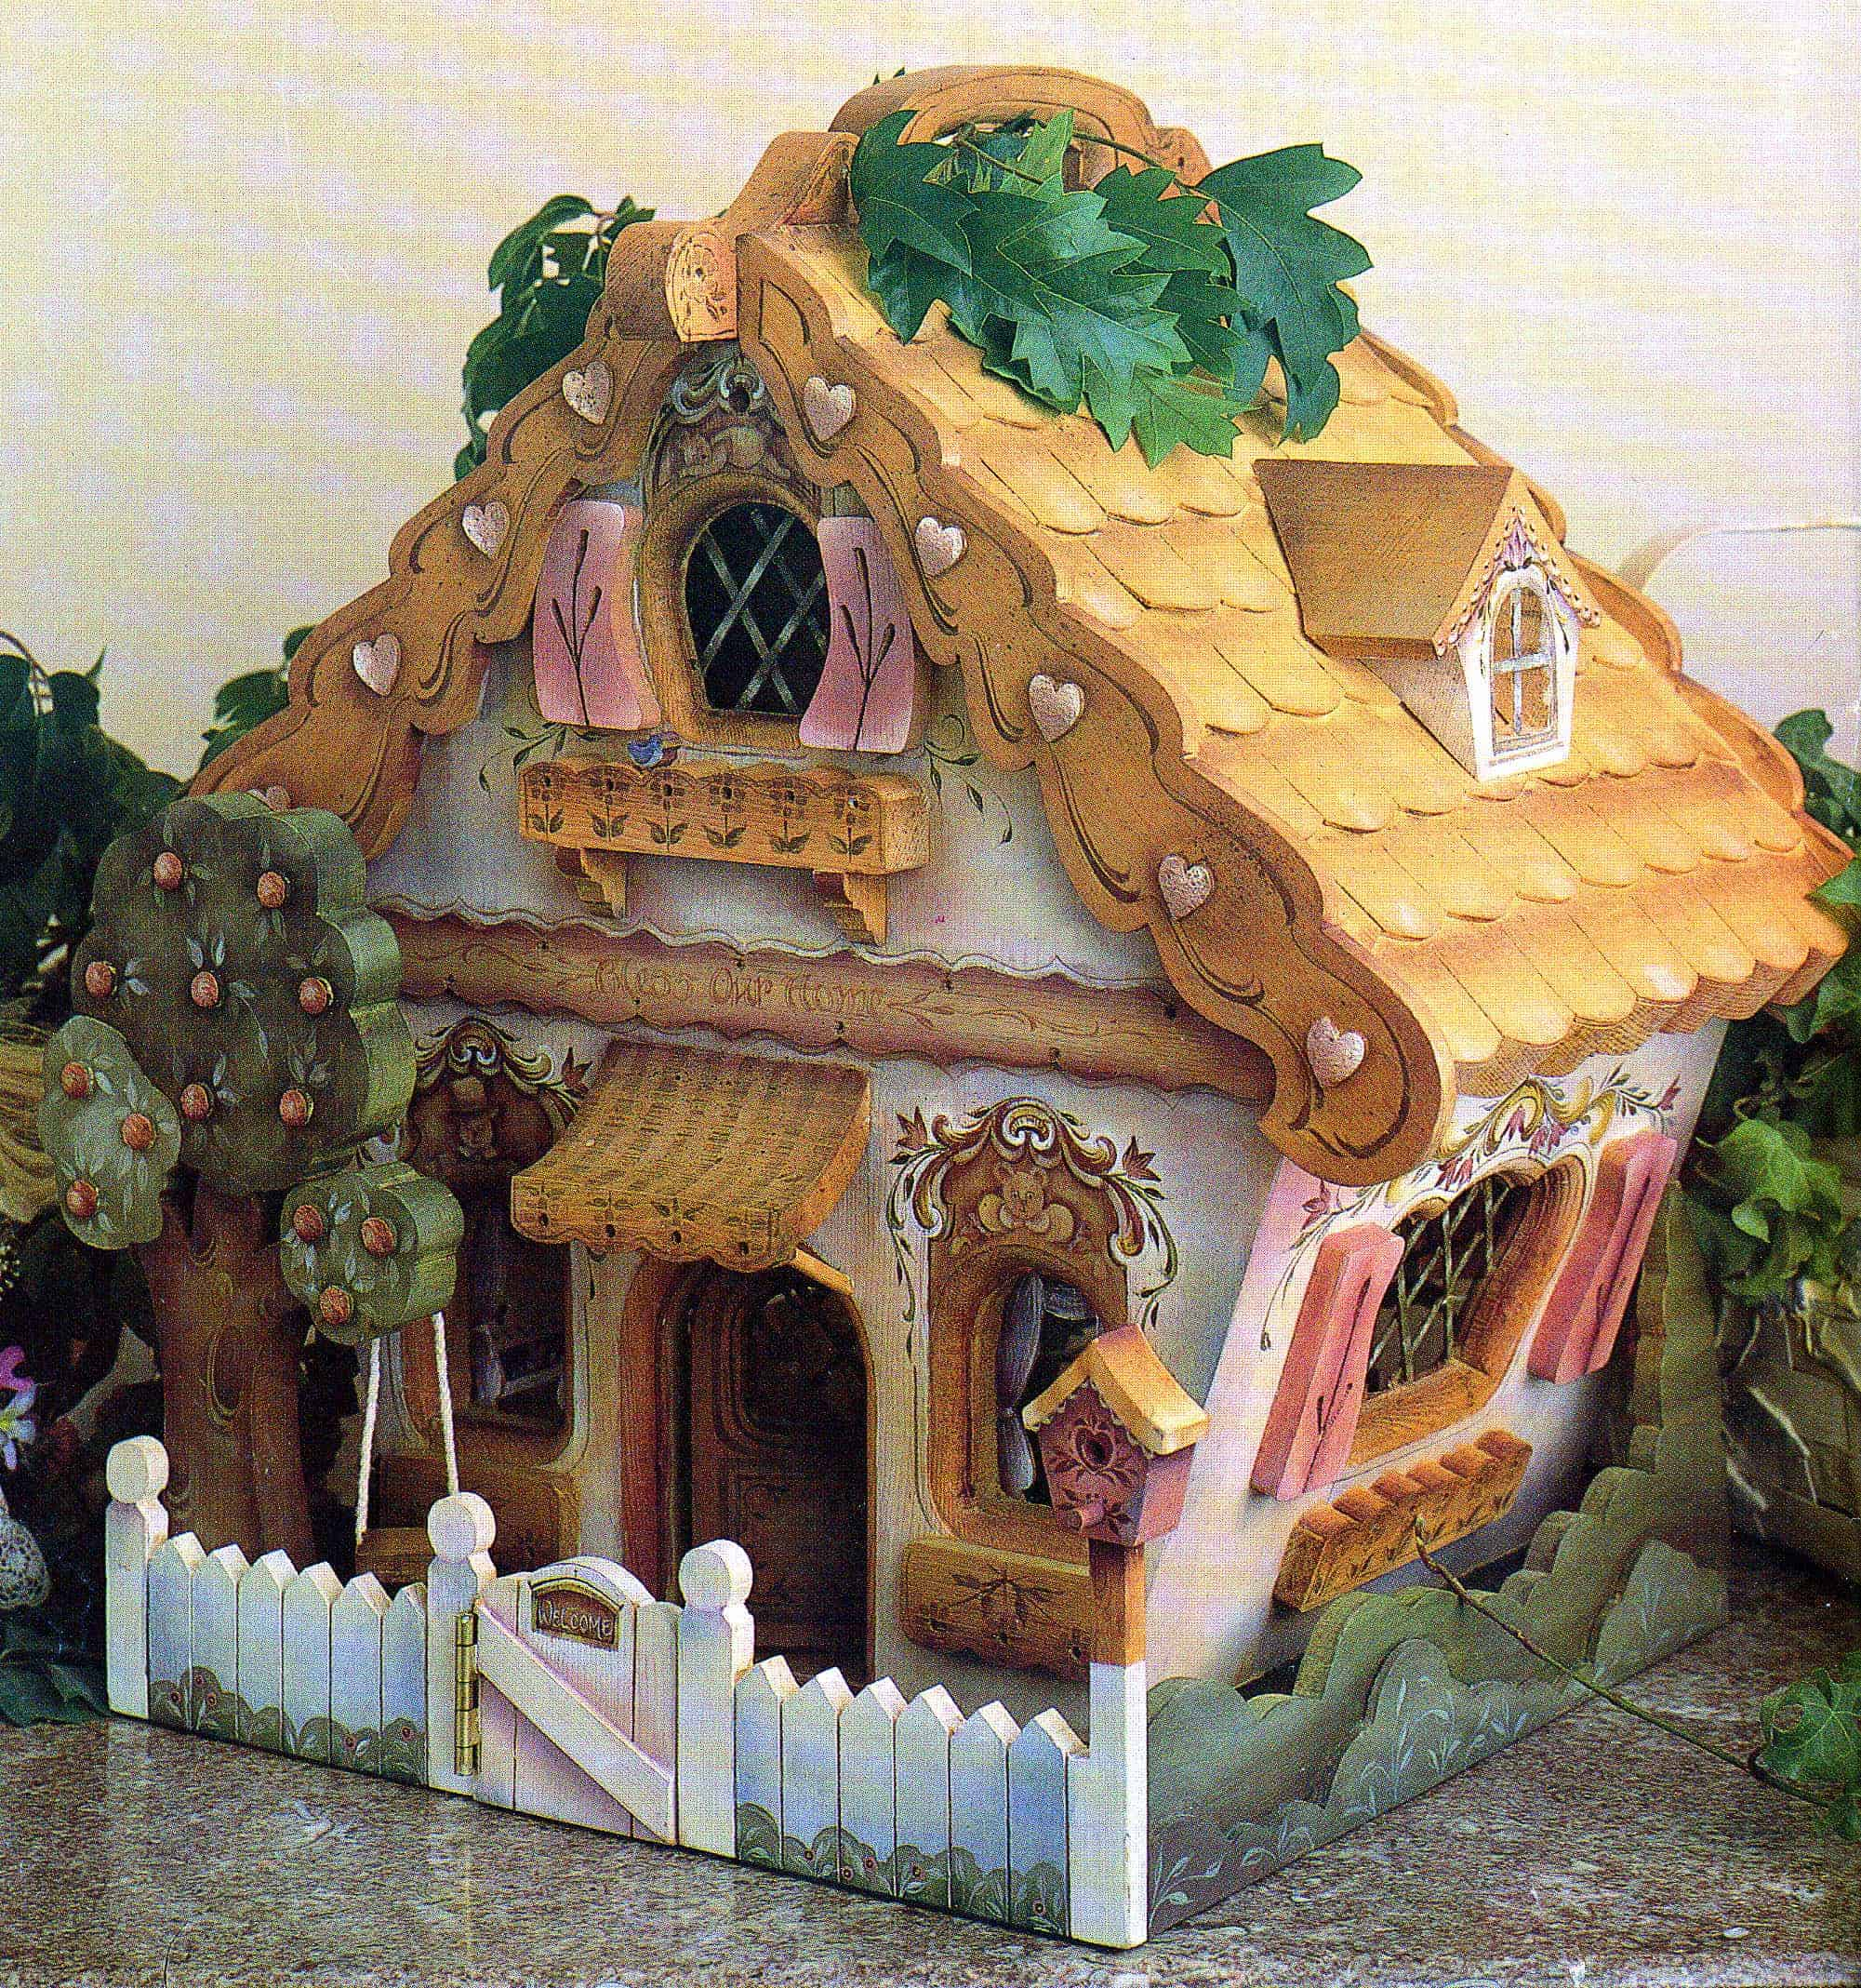 Woodworking plan for building a fun, whymsical doll house ...